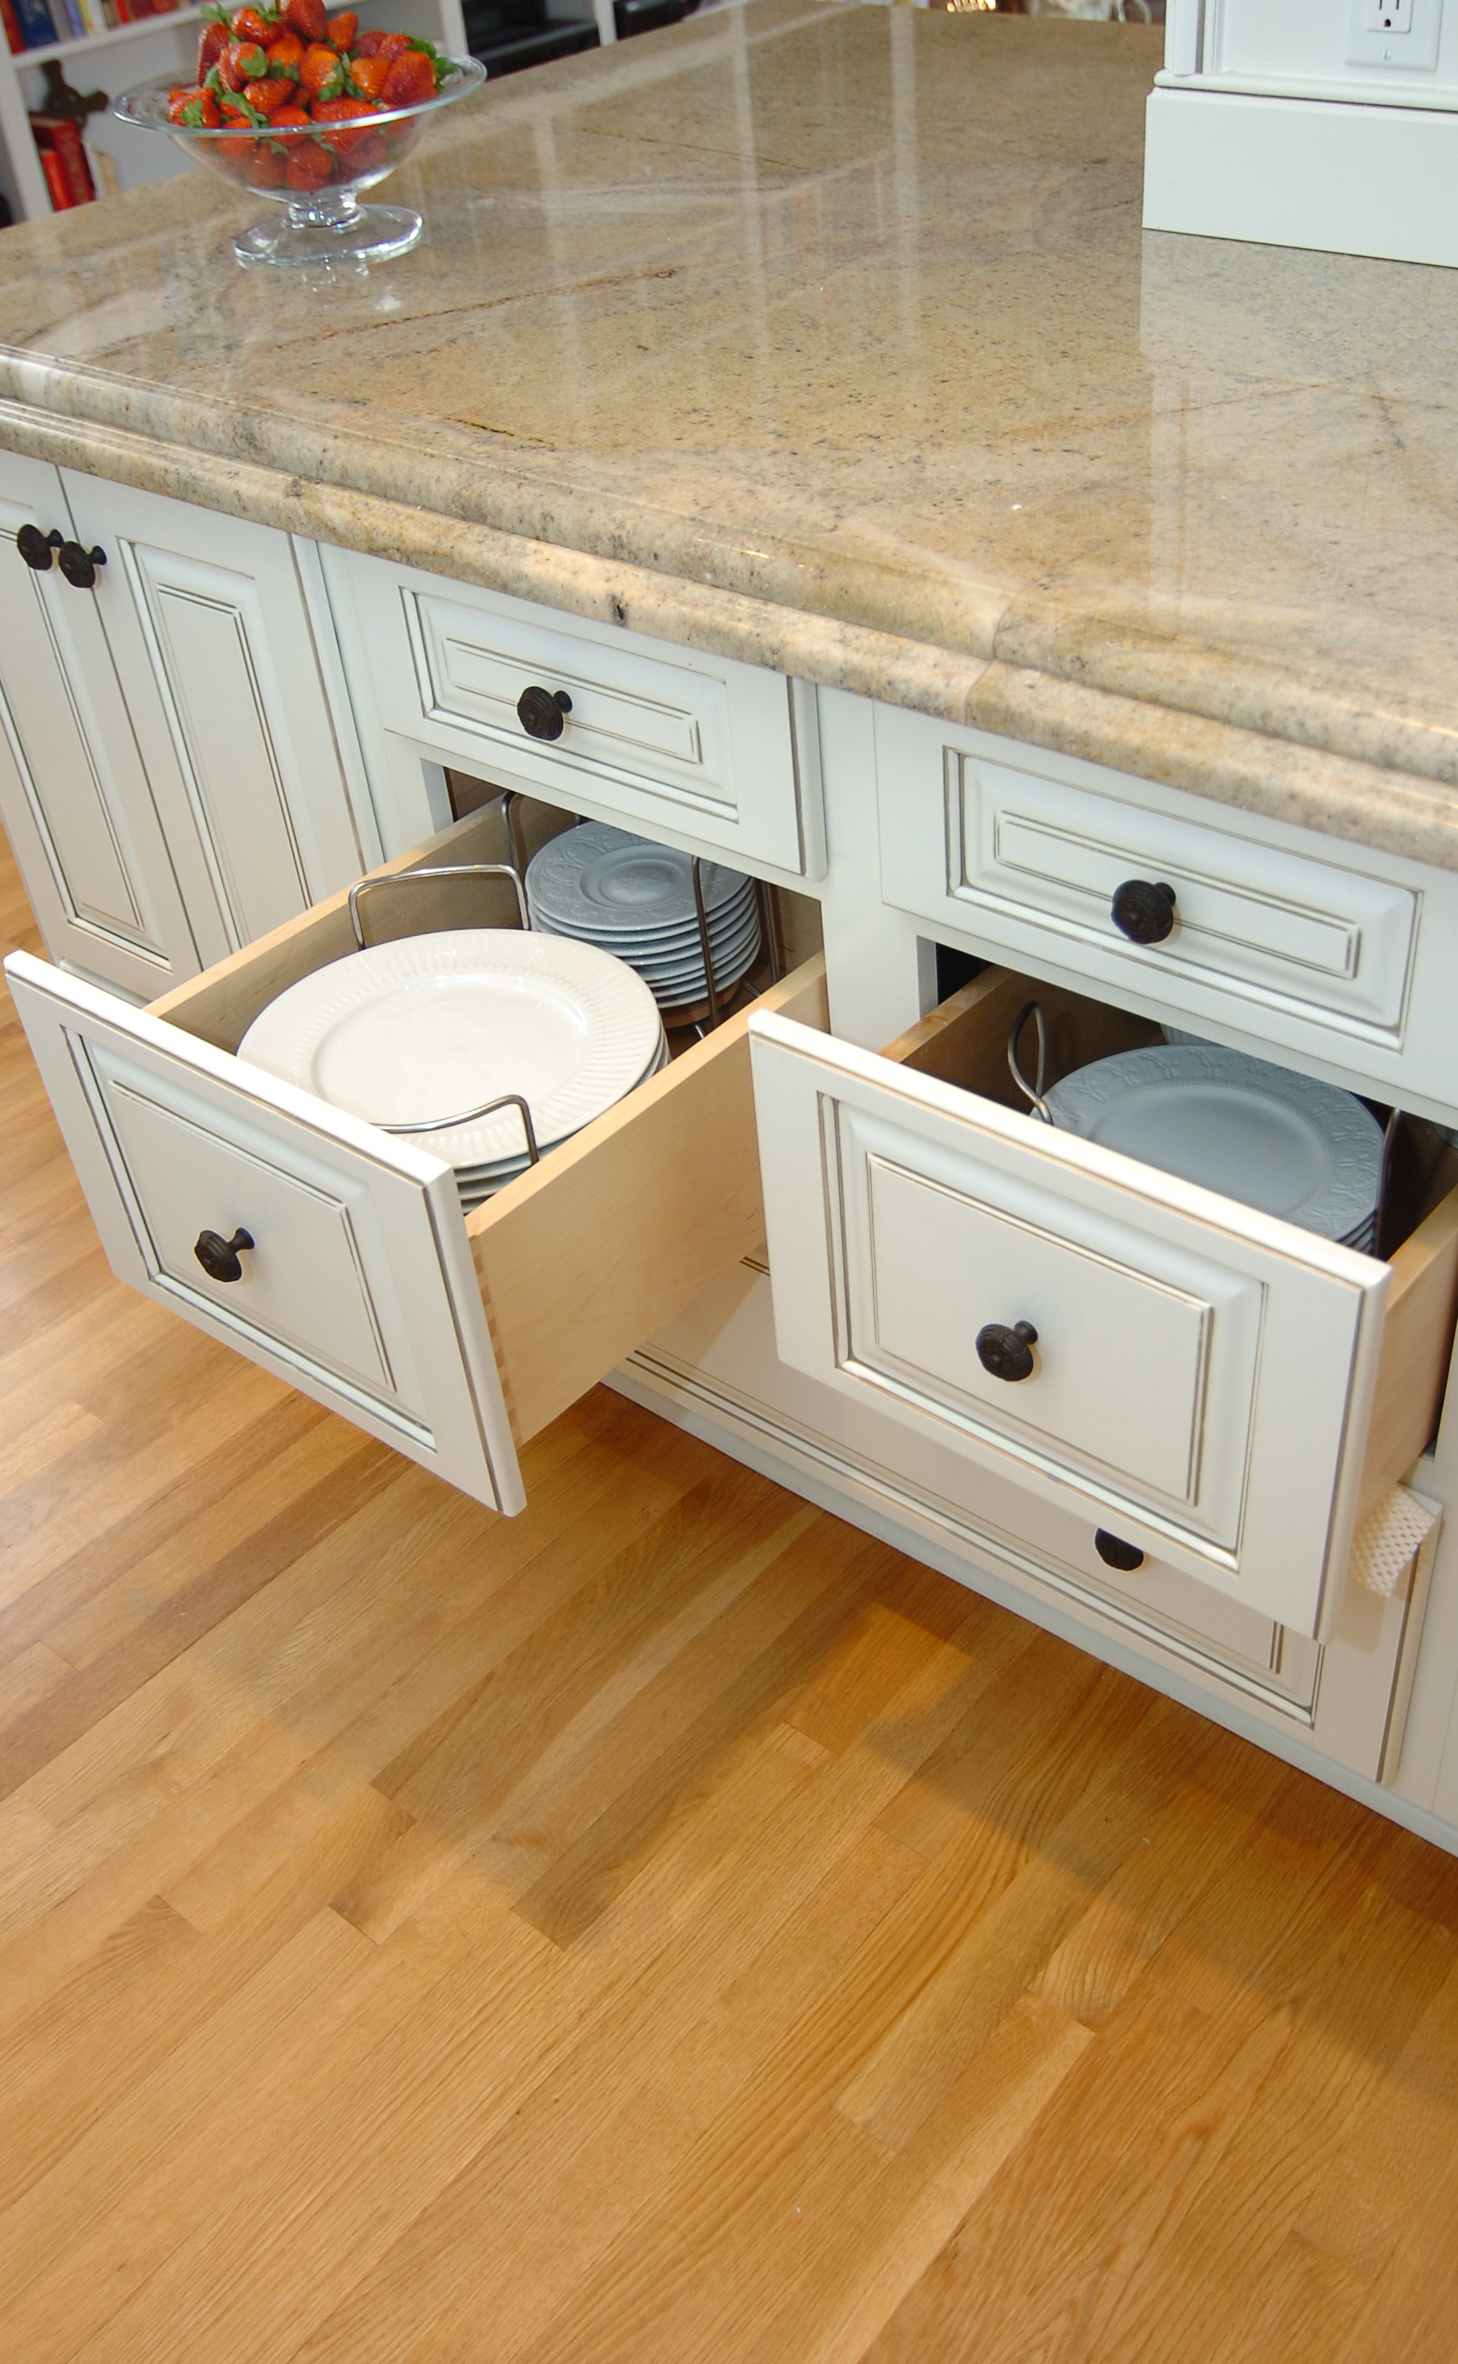 Painted Kitchen Cabinets With Plate Storage In Drawers